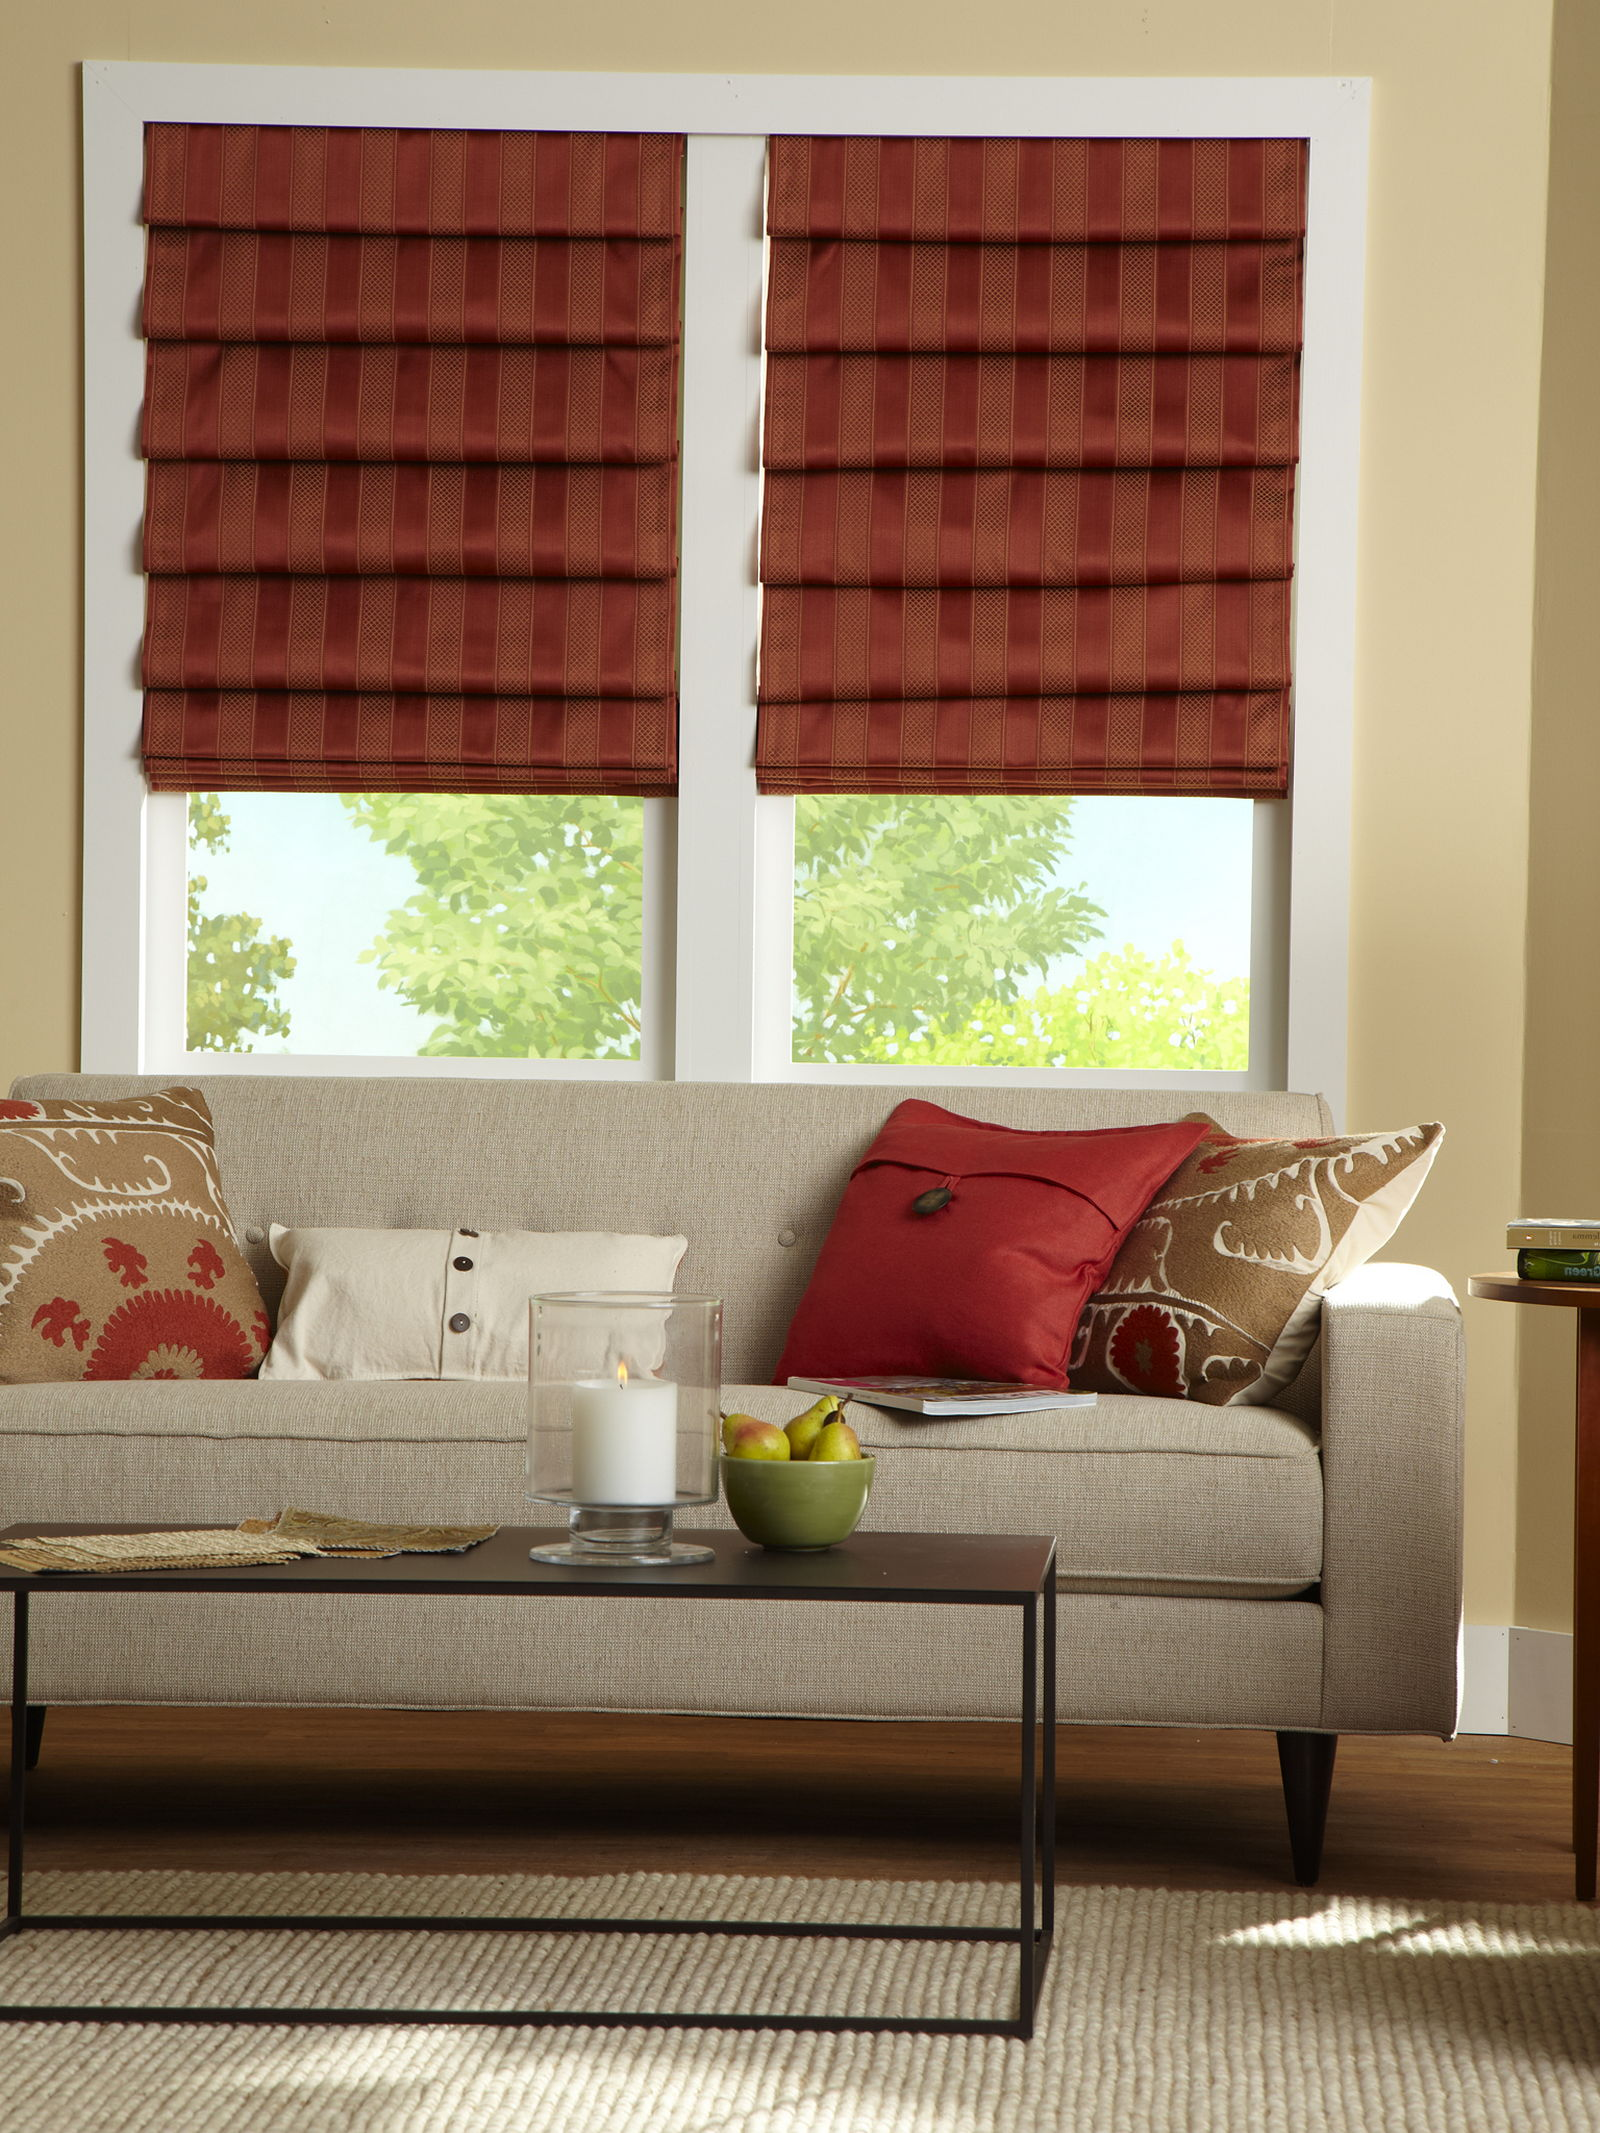 Living Room Curtains: the best photos of curtains` design ... on Living Room Curtains Ideas  id=12775